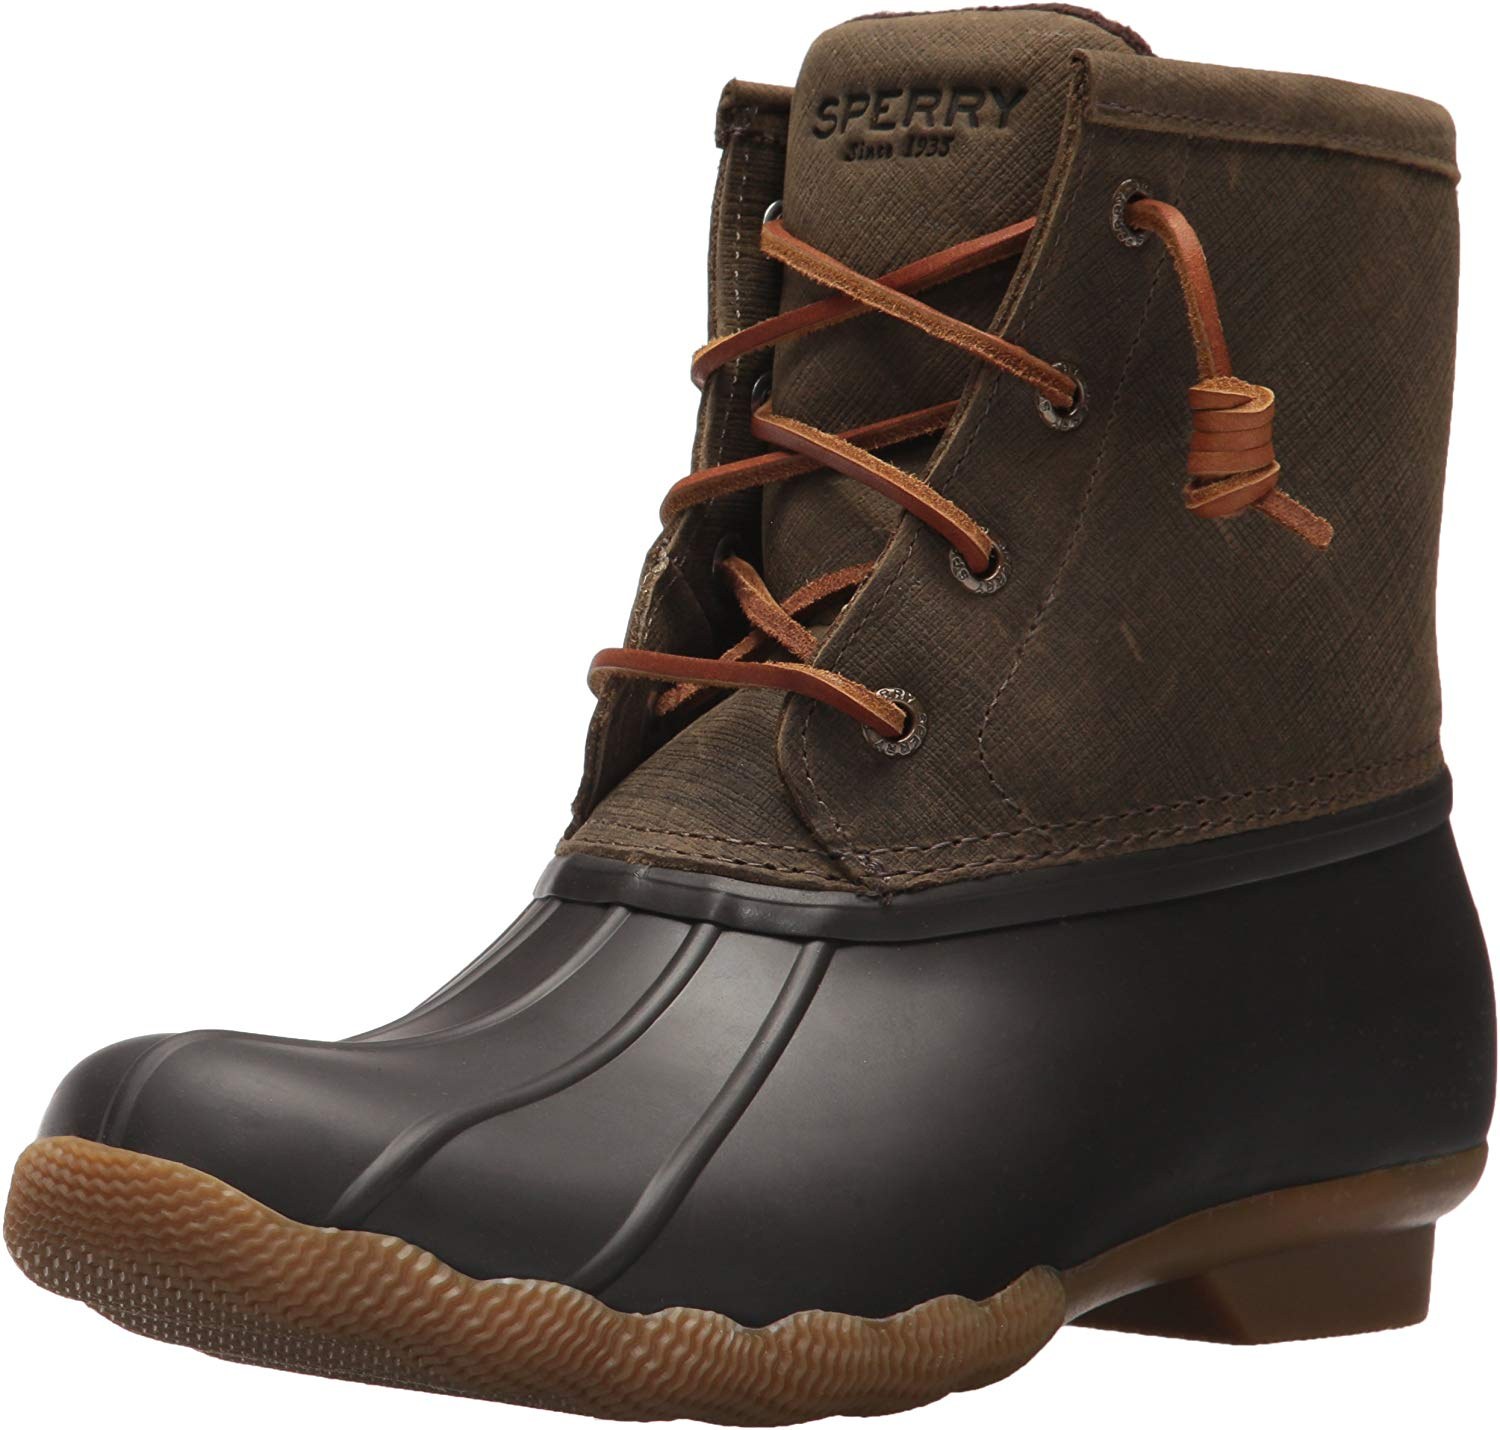 Sperry Womens Saltwater Boots - Brown/Olive - 11